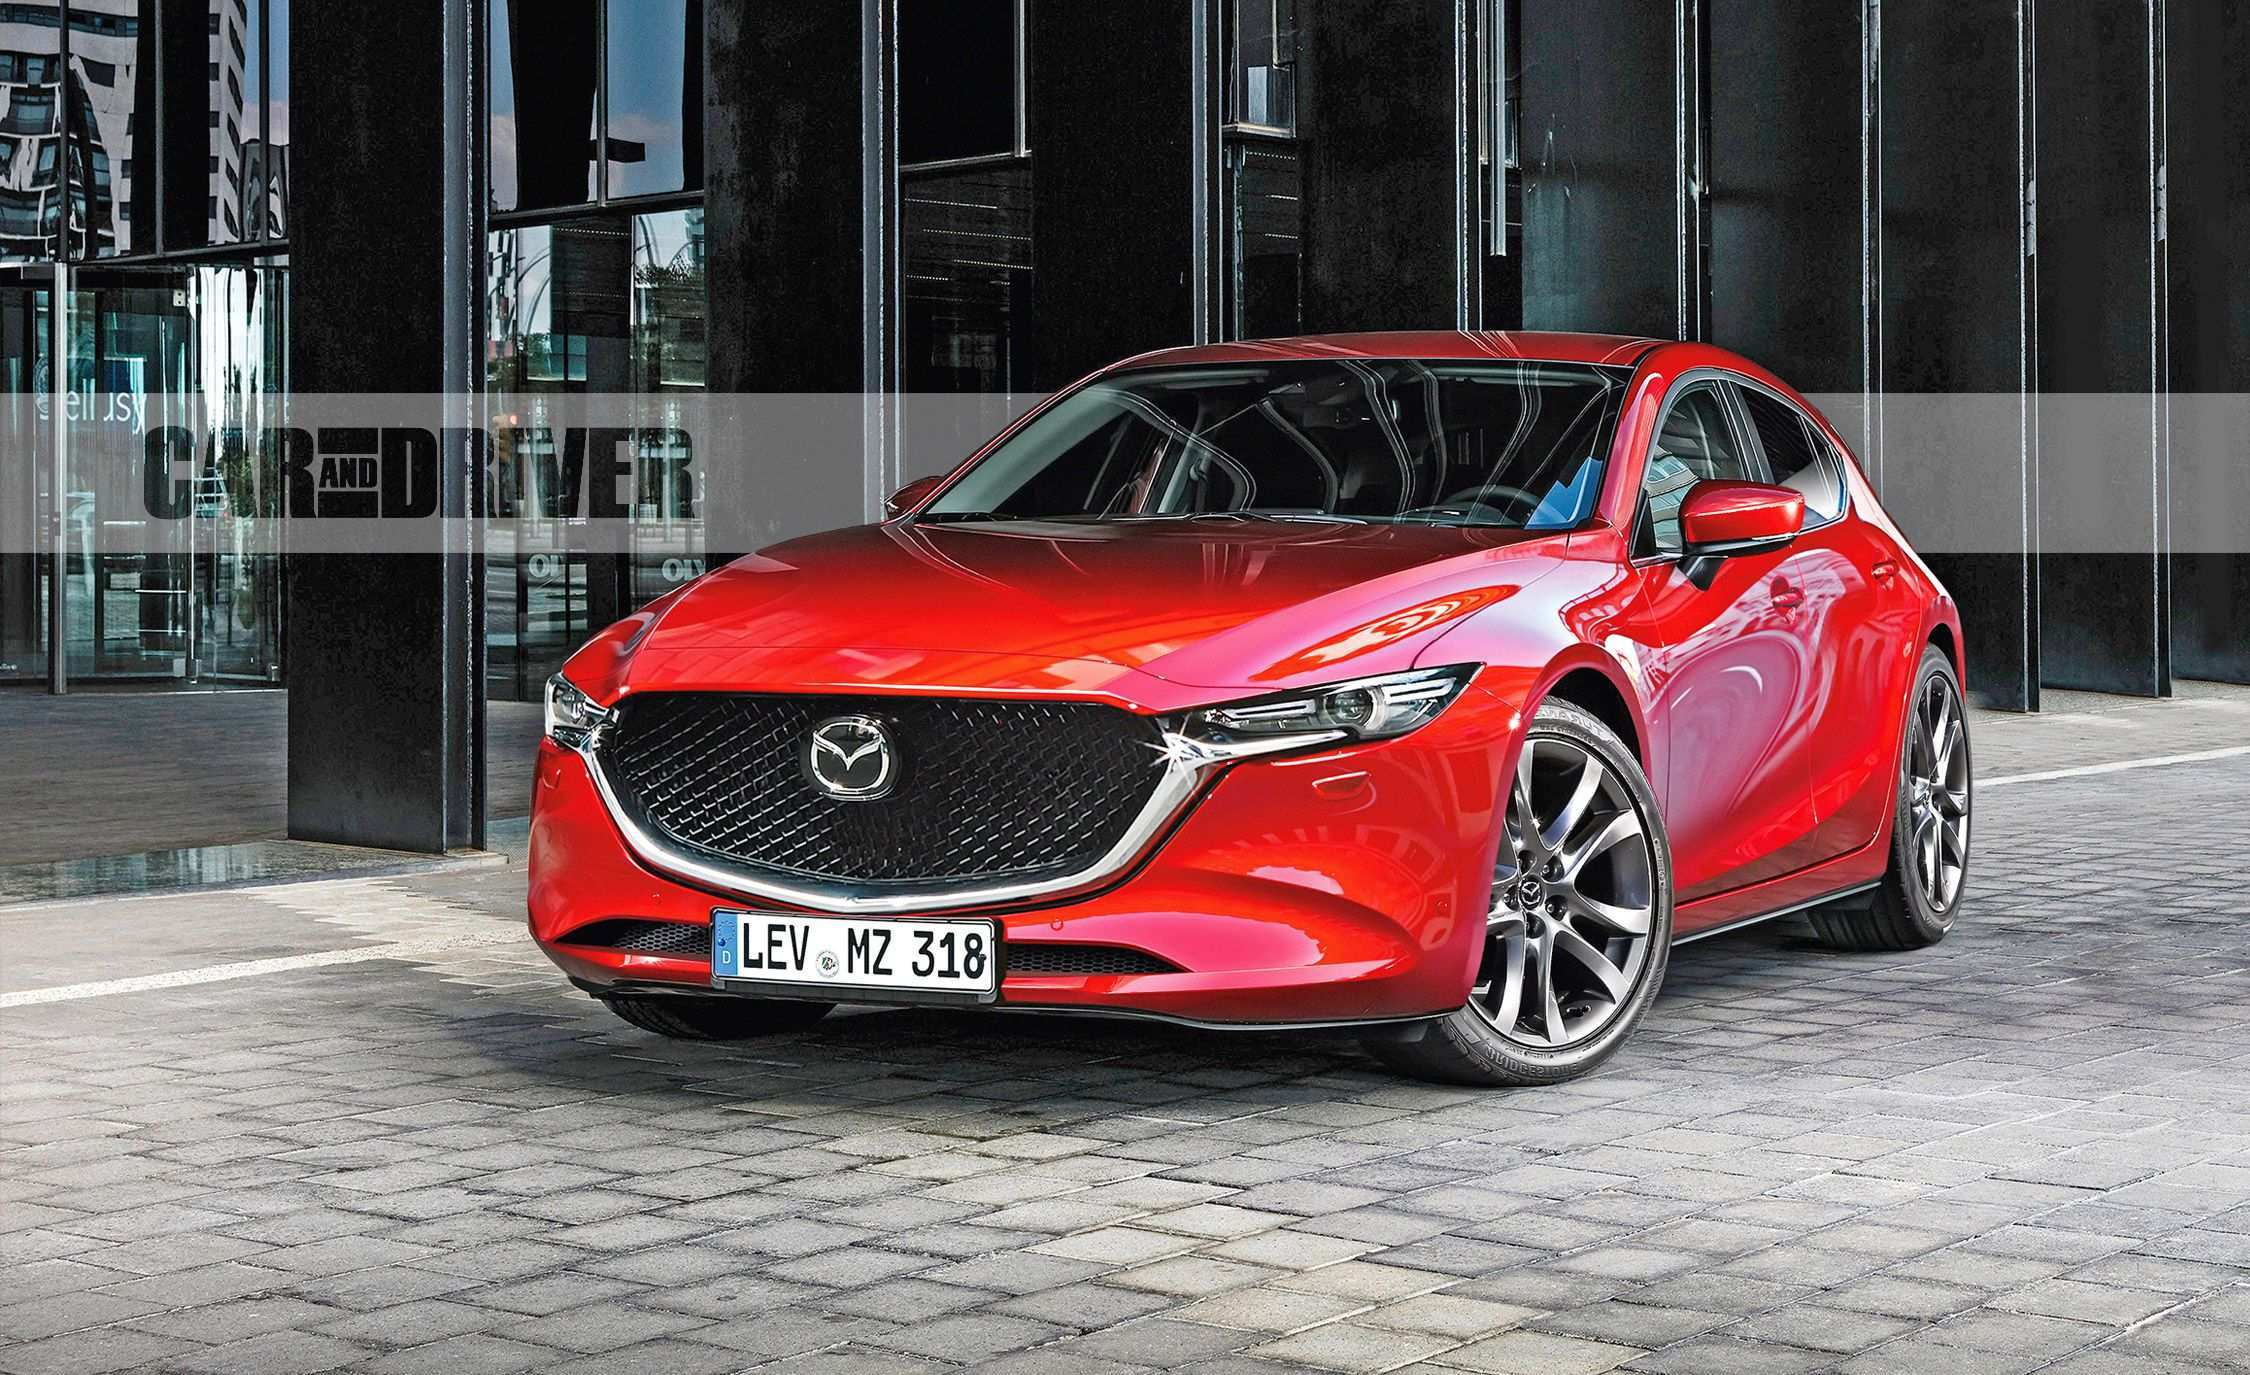 73 The Mazda 3 2020 New Concept Wallpaper for Mazda 3 2020 New Concept